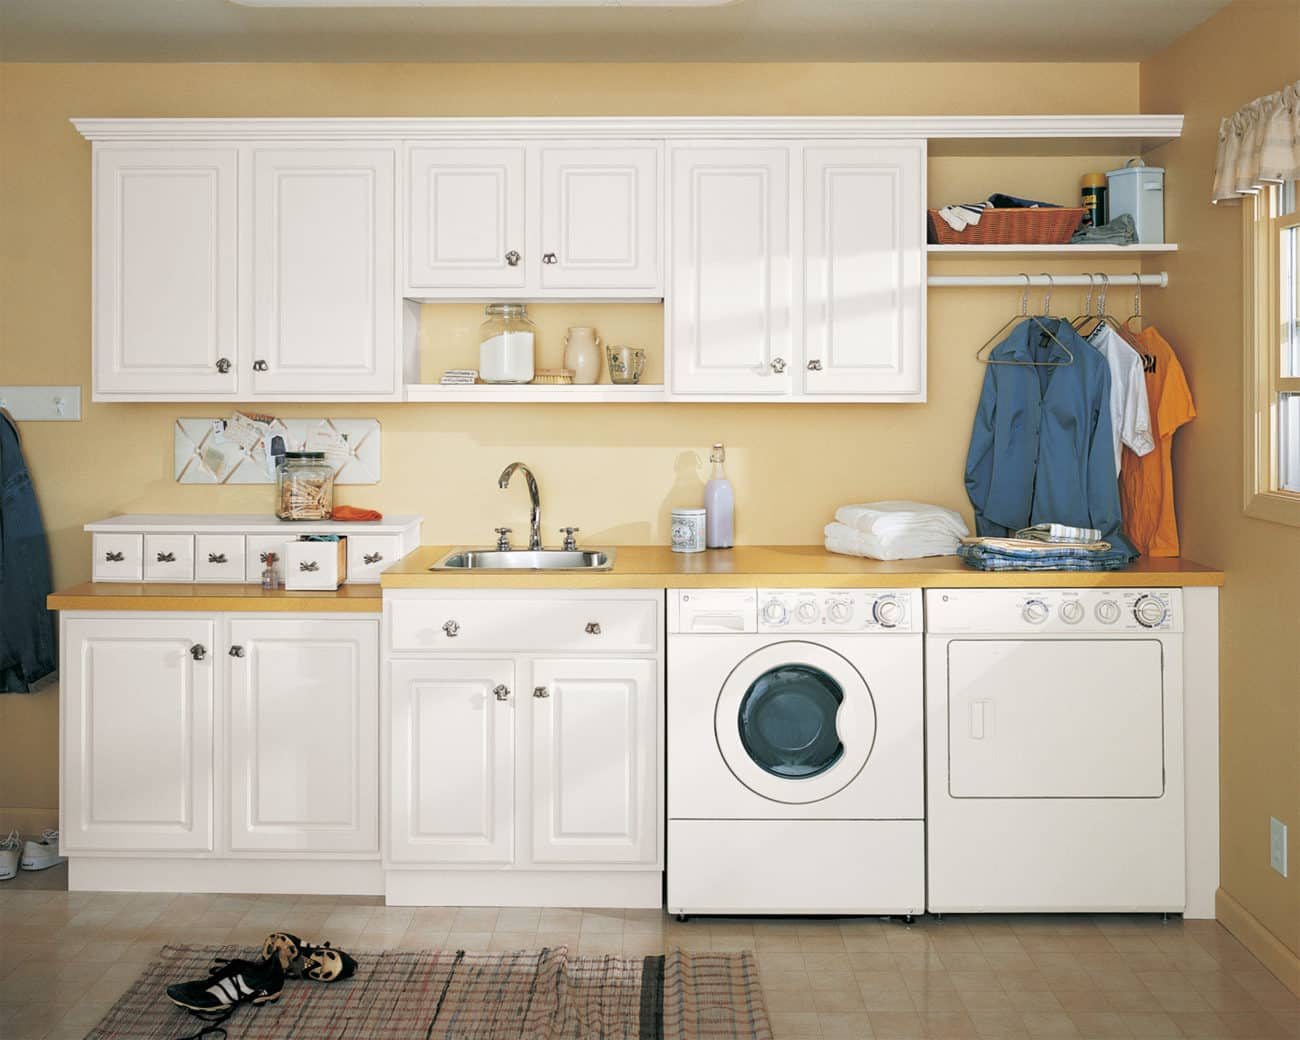 Closetmaid Design Ideas closetmaid popular designs gallery Laundry Room Design Ideas